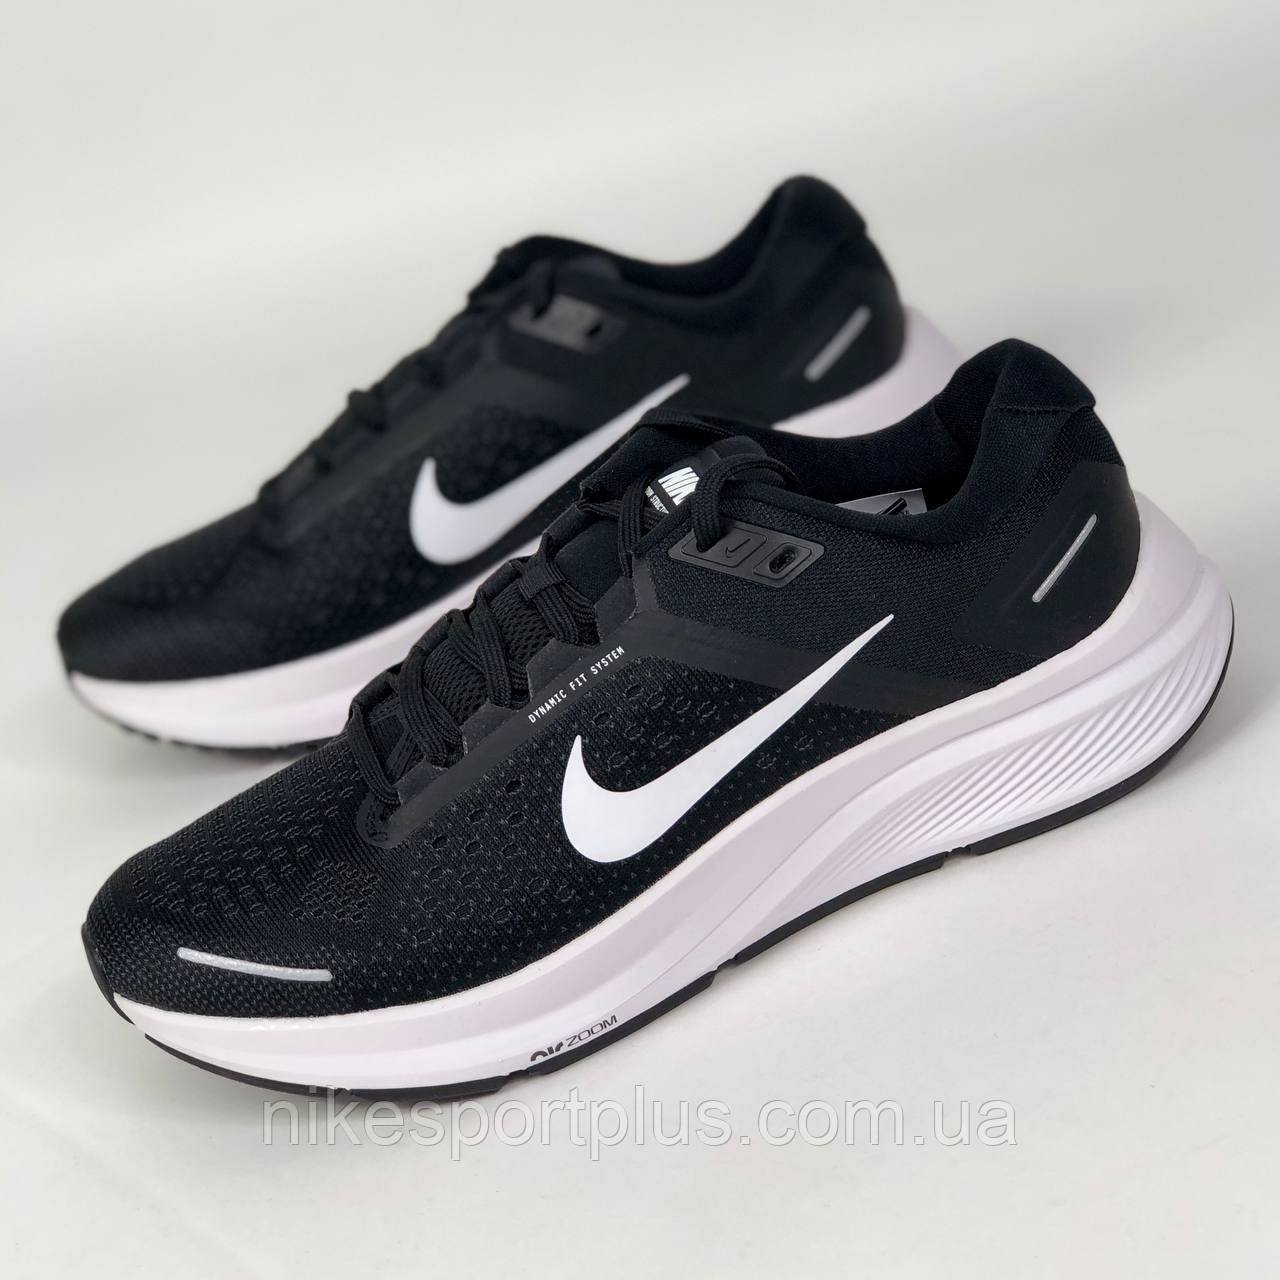 КРОССОВКИ NIKE AIR ZOOM STRUCTURE 23 CZ6720-001